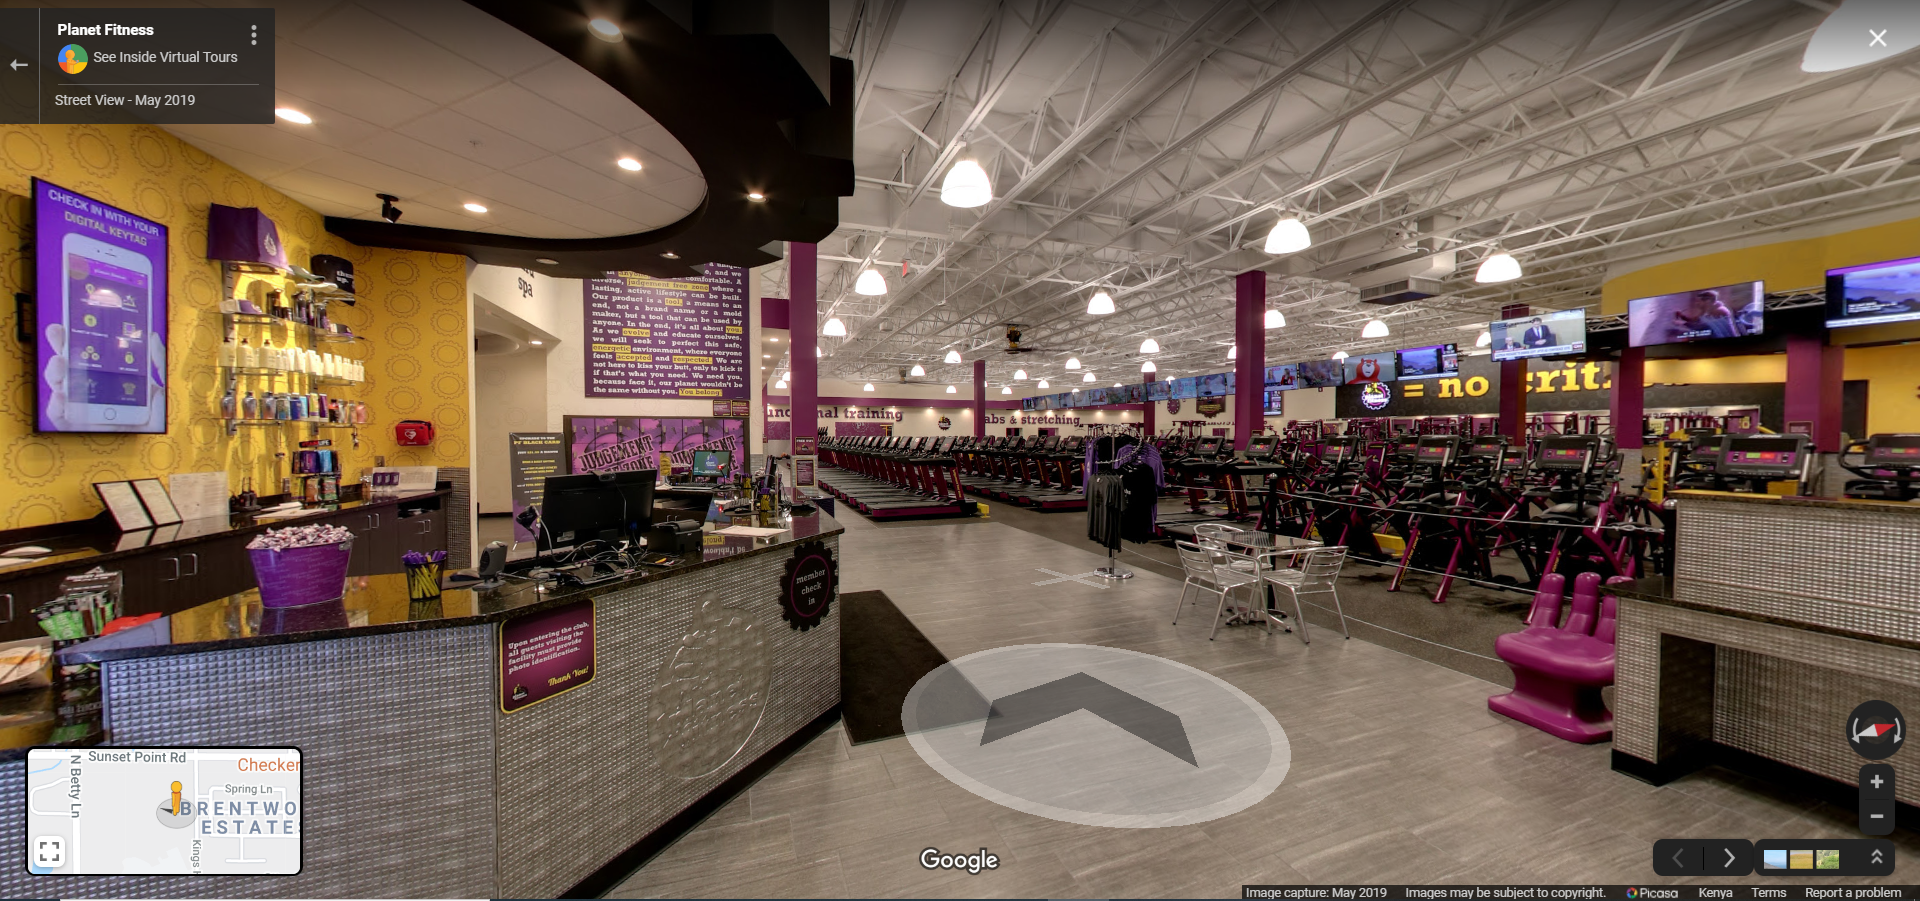 Planet Fitness - Clearwater